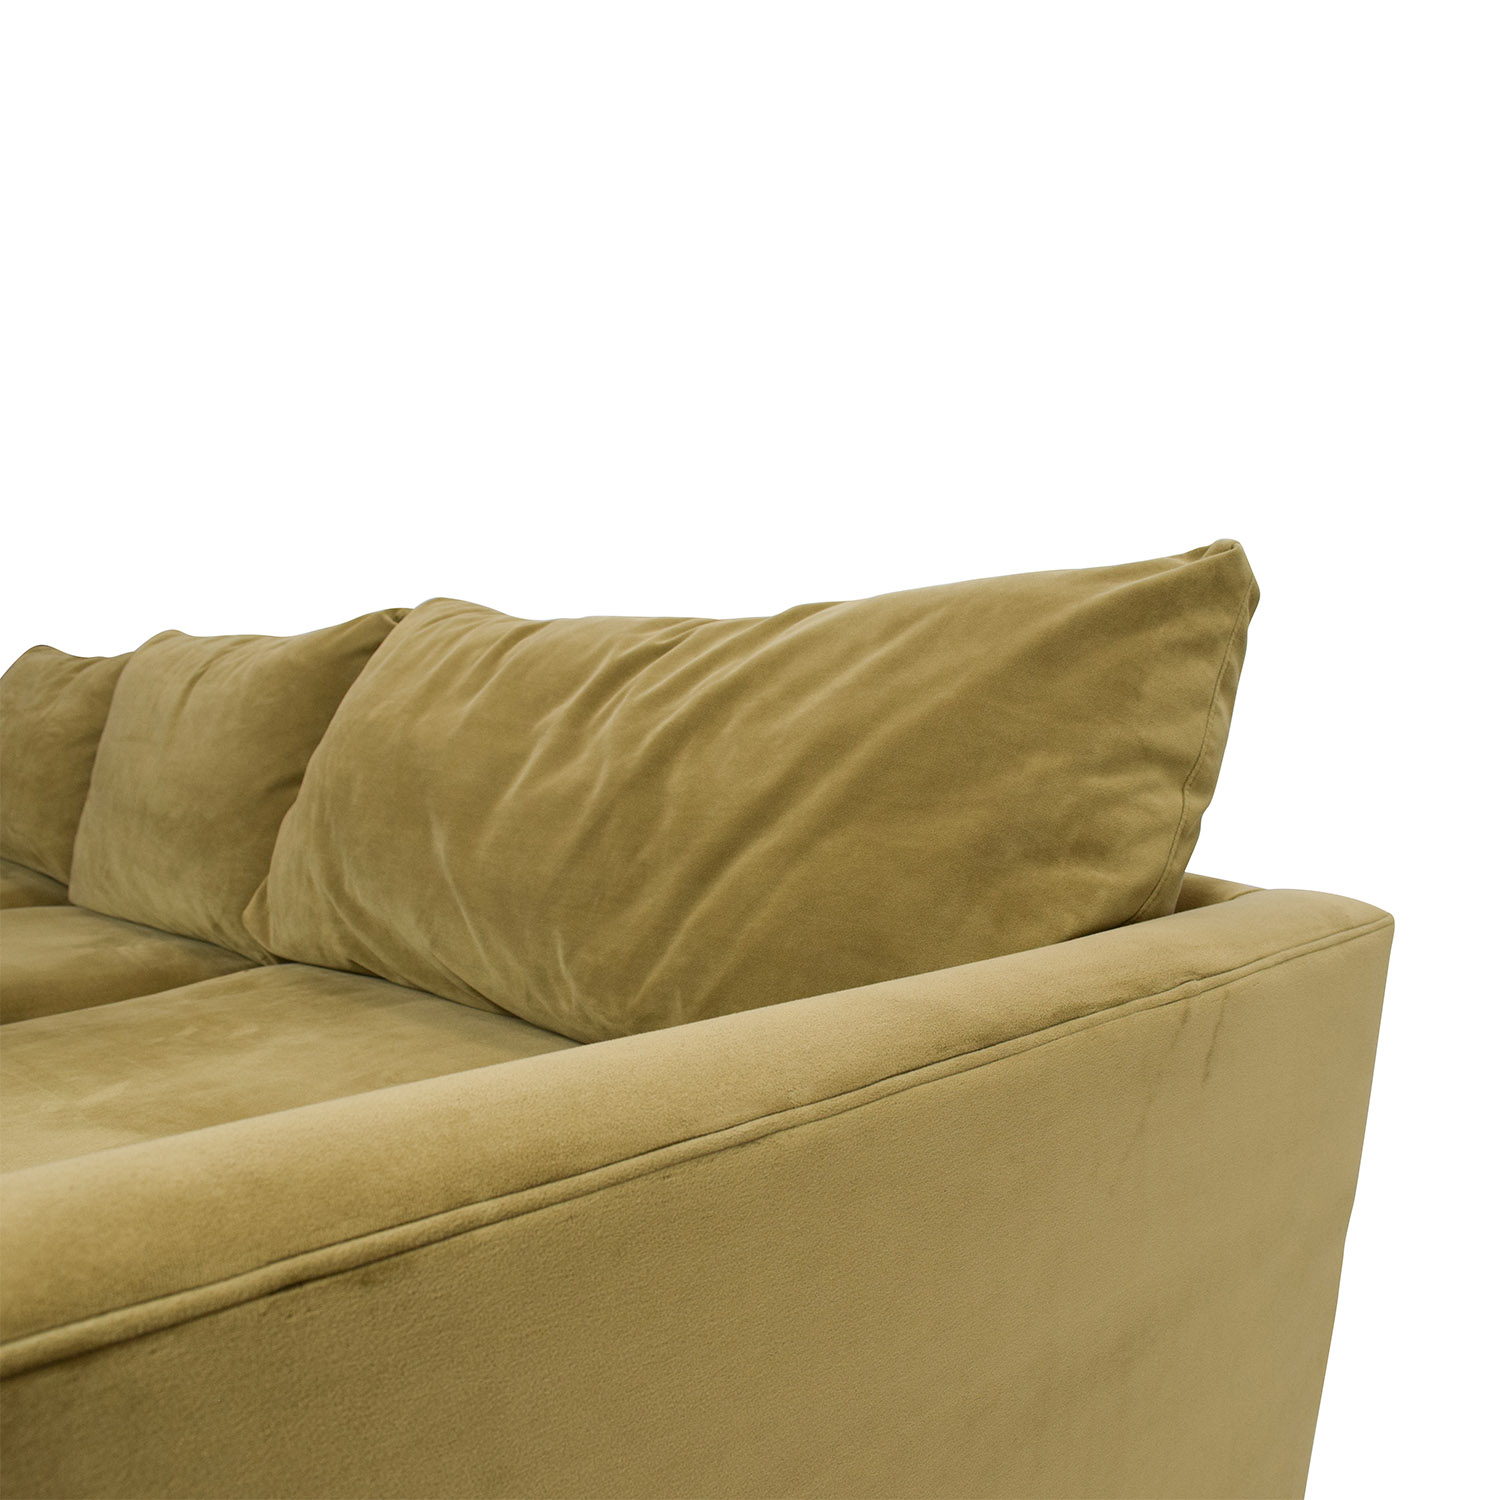 ... Crate And Barrel Crate And Barrel Lounge II Sectional Sofa Camel ...